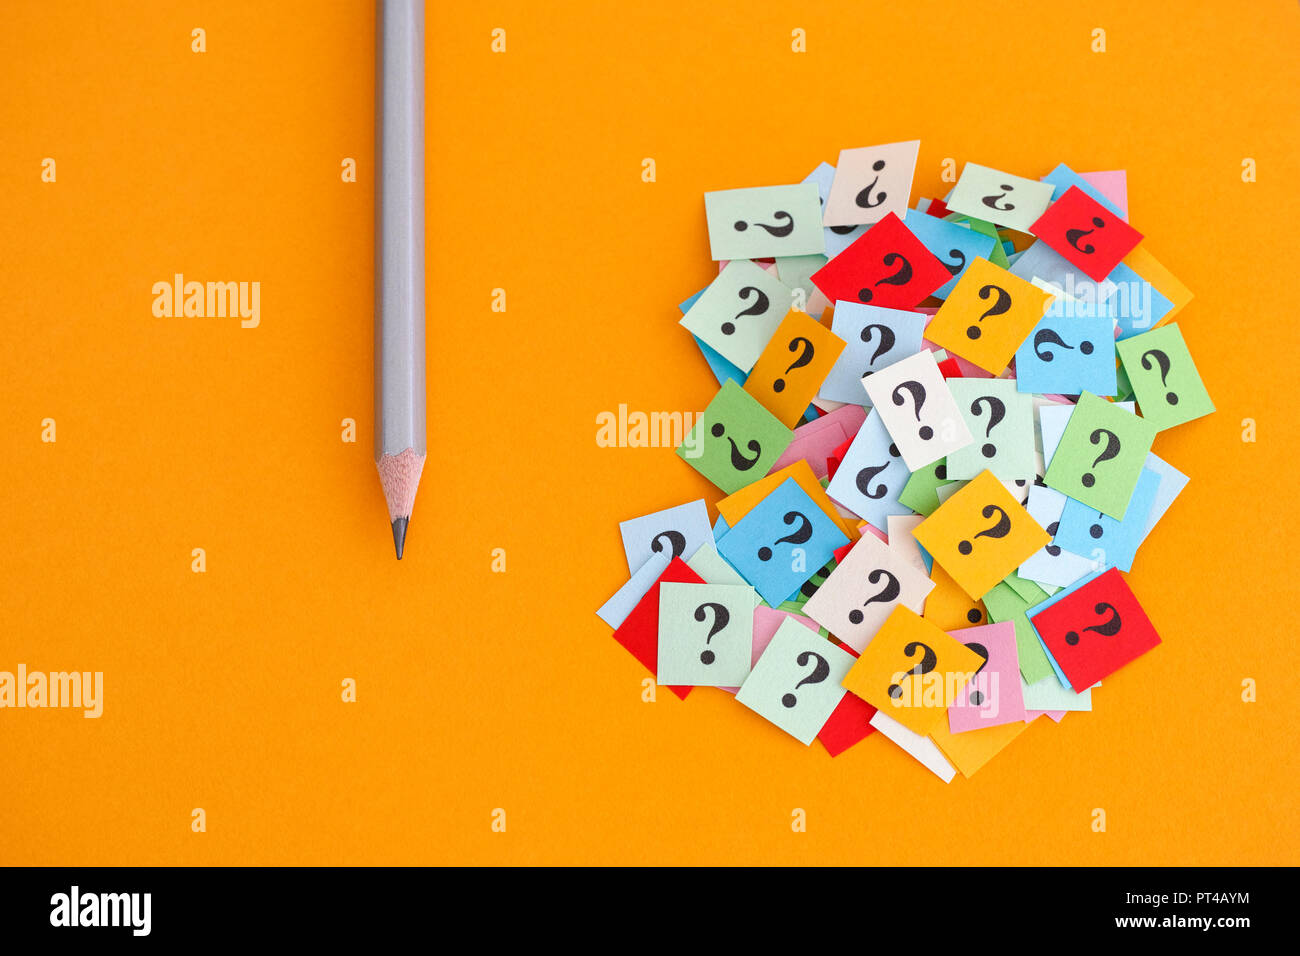 Pencil and question marks on yellow background. Concept image. Close up. Stock Photo